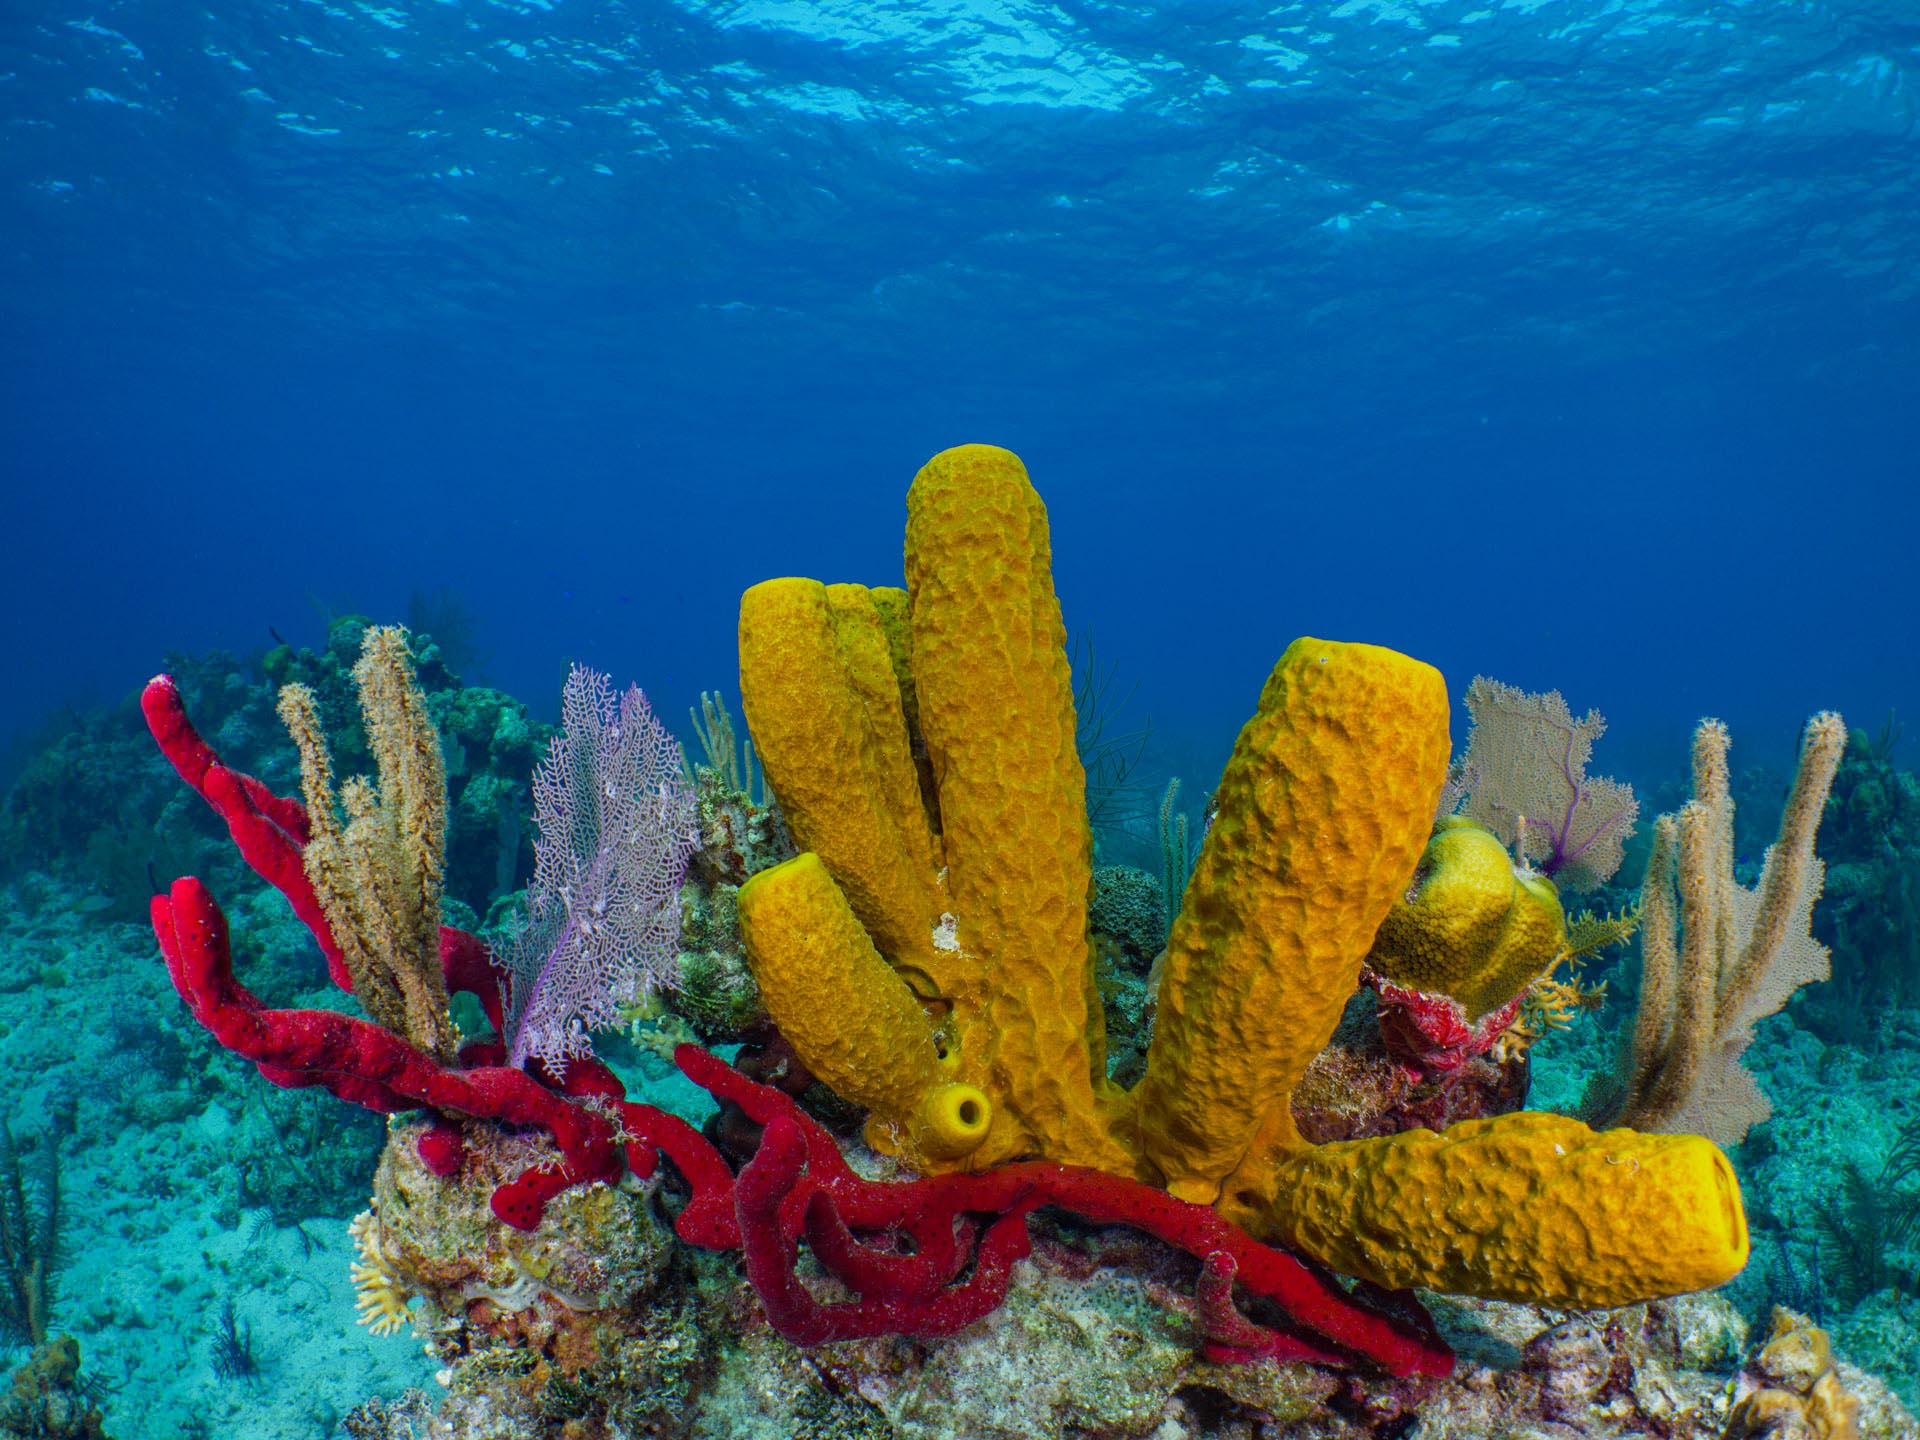 Yellow sea sponge un Caribbean